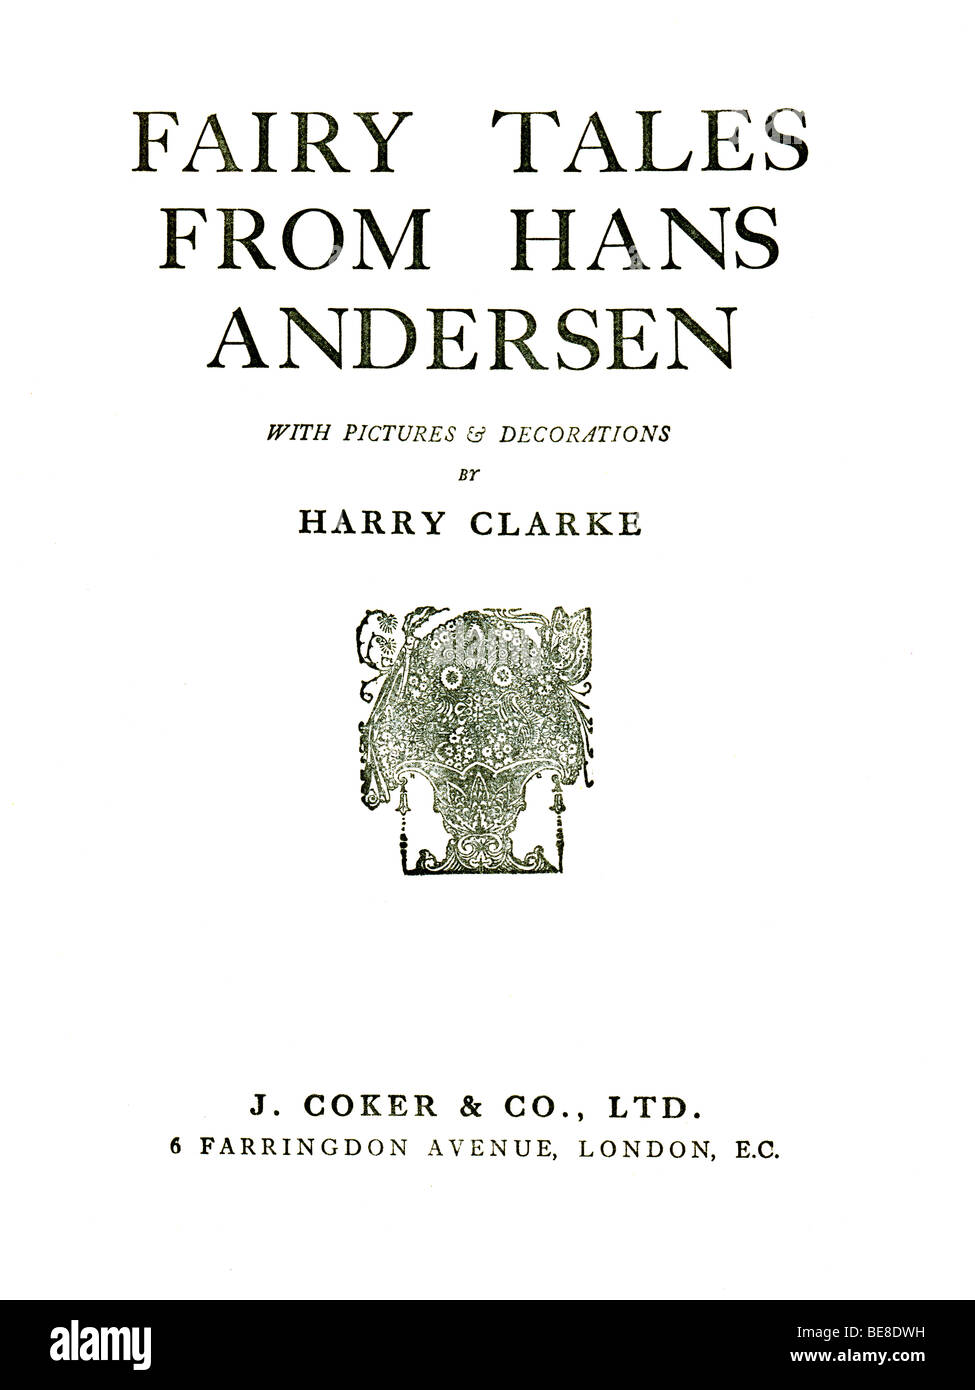 Hardback Book Hans Andersen 's Fairy Tales published by by J Coker & Co of London c 1930  FOR EDITORIAL USE ONLY Stock Photo